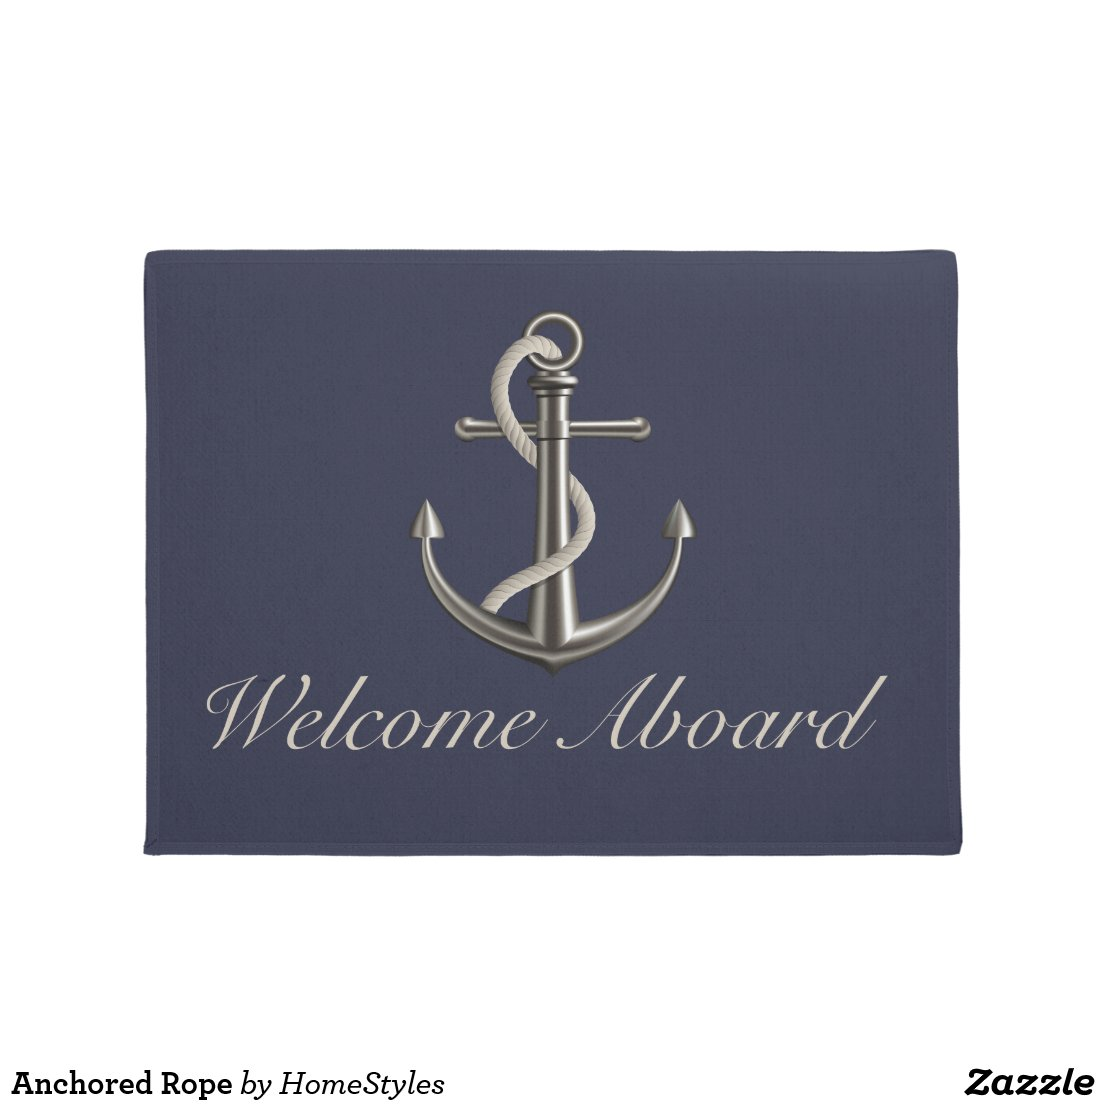 Anchored Rope Doormat